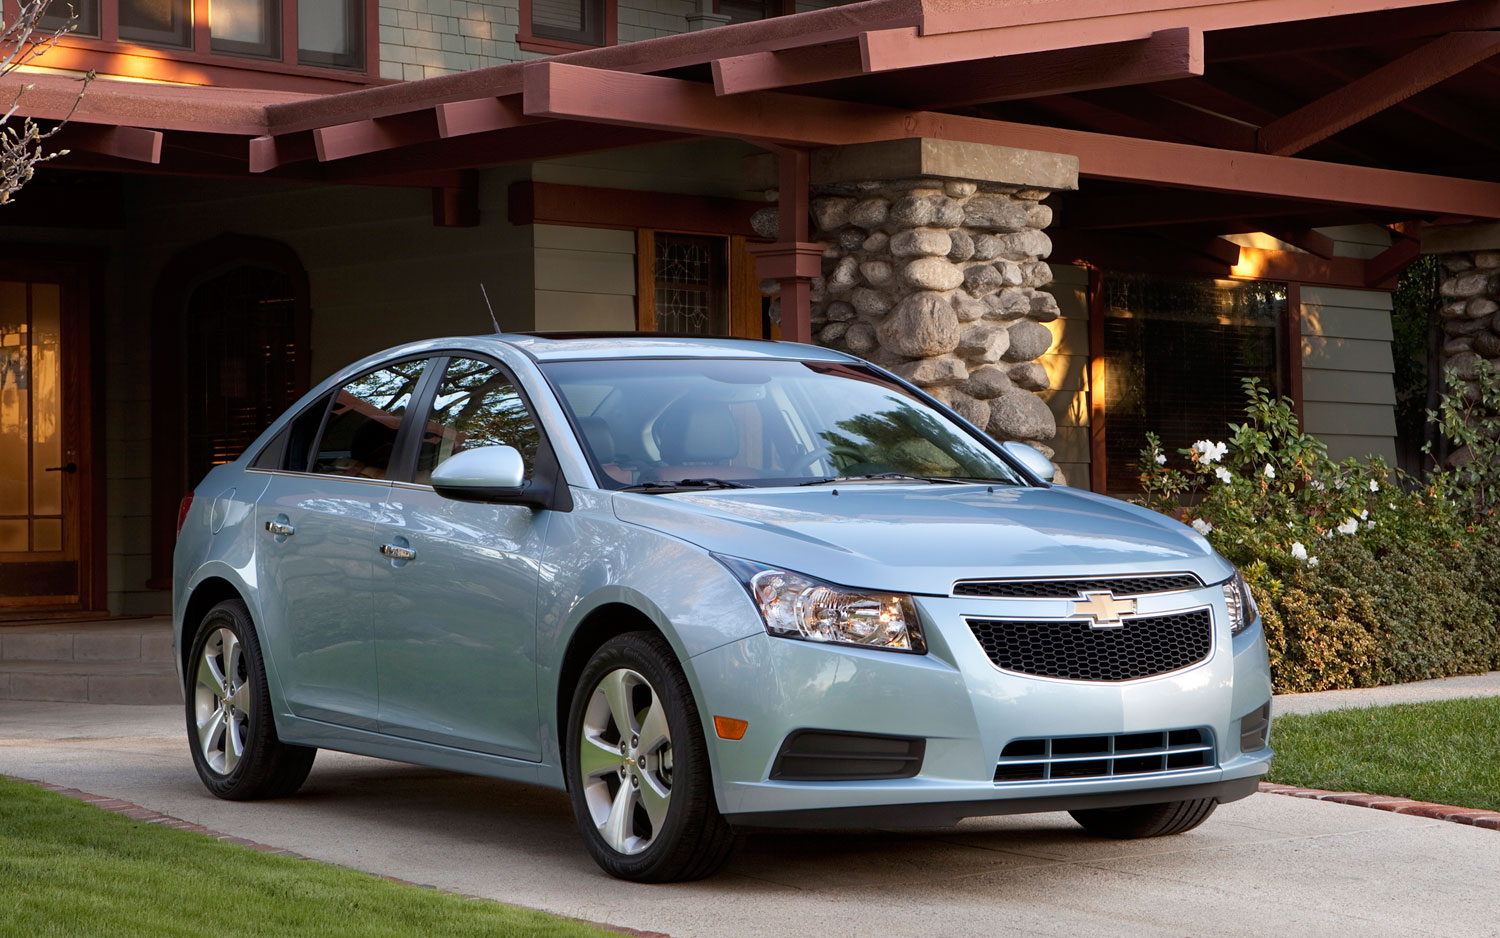 2011 Chevrolet Cruze Front Three Quarter21